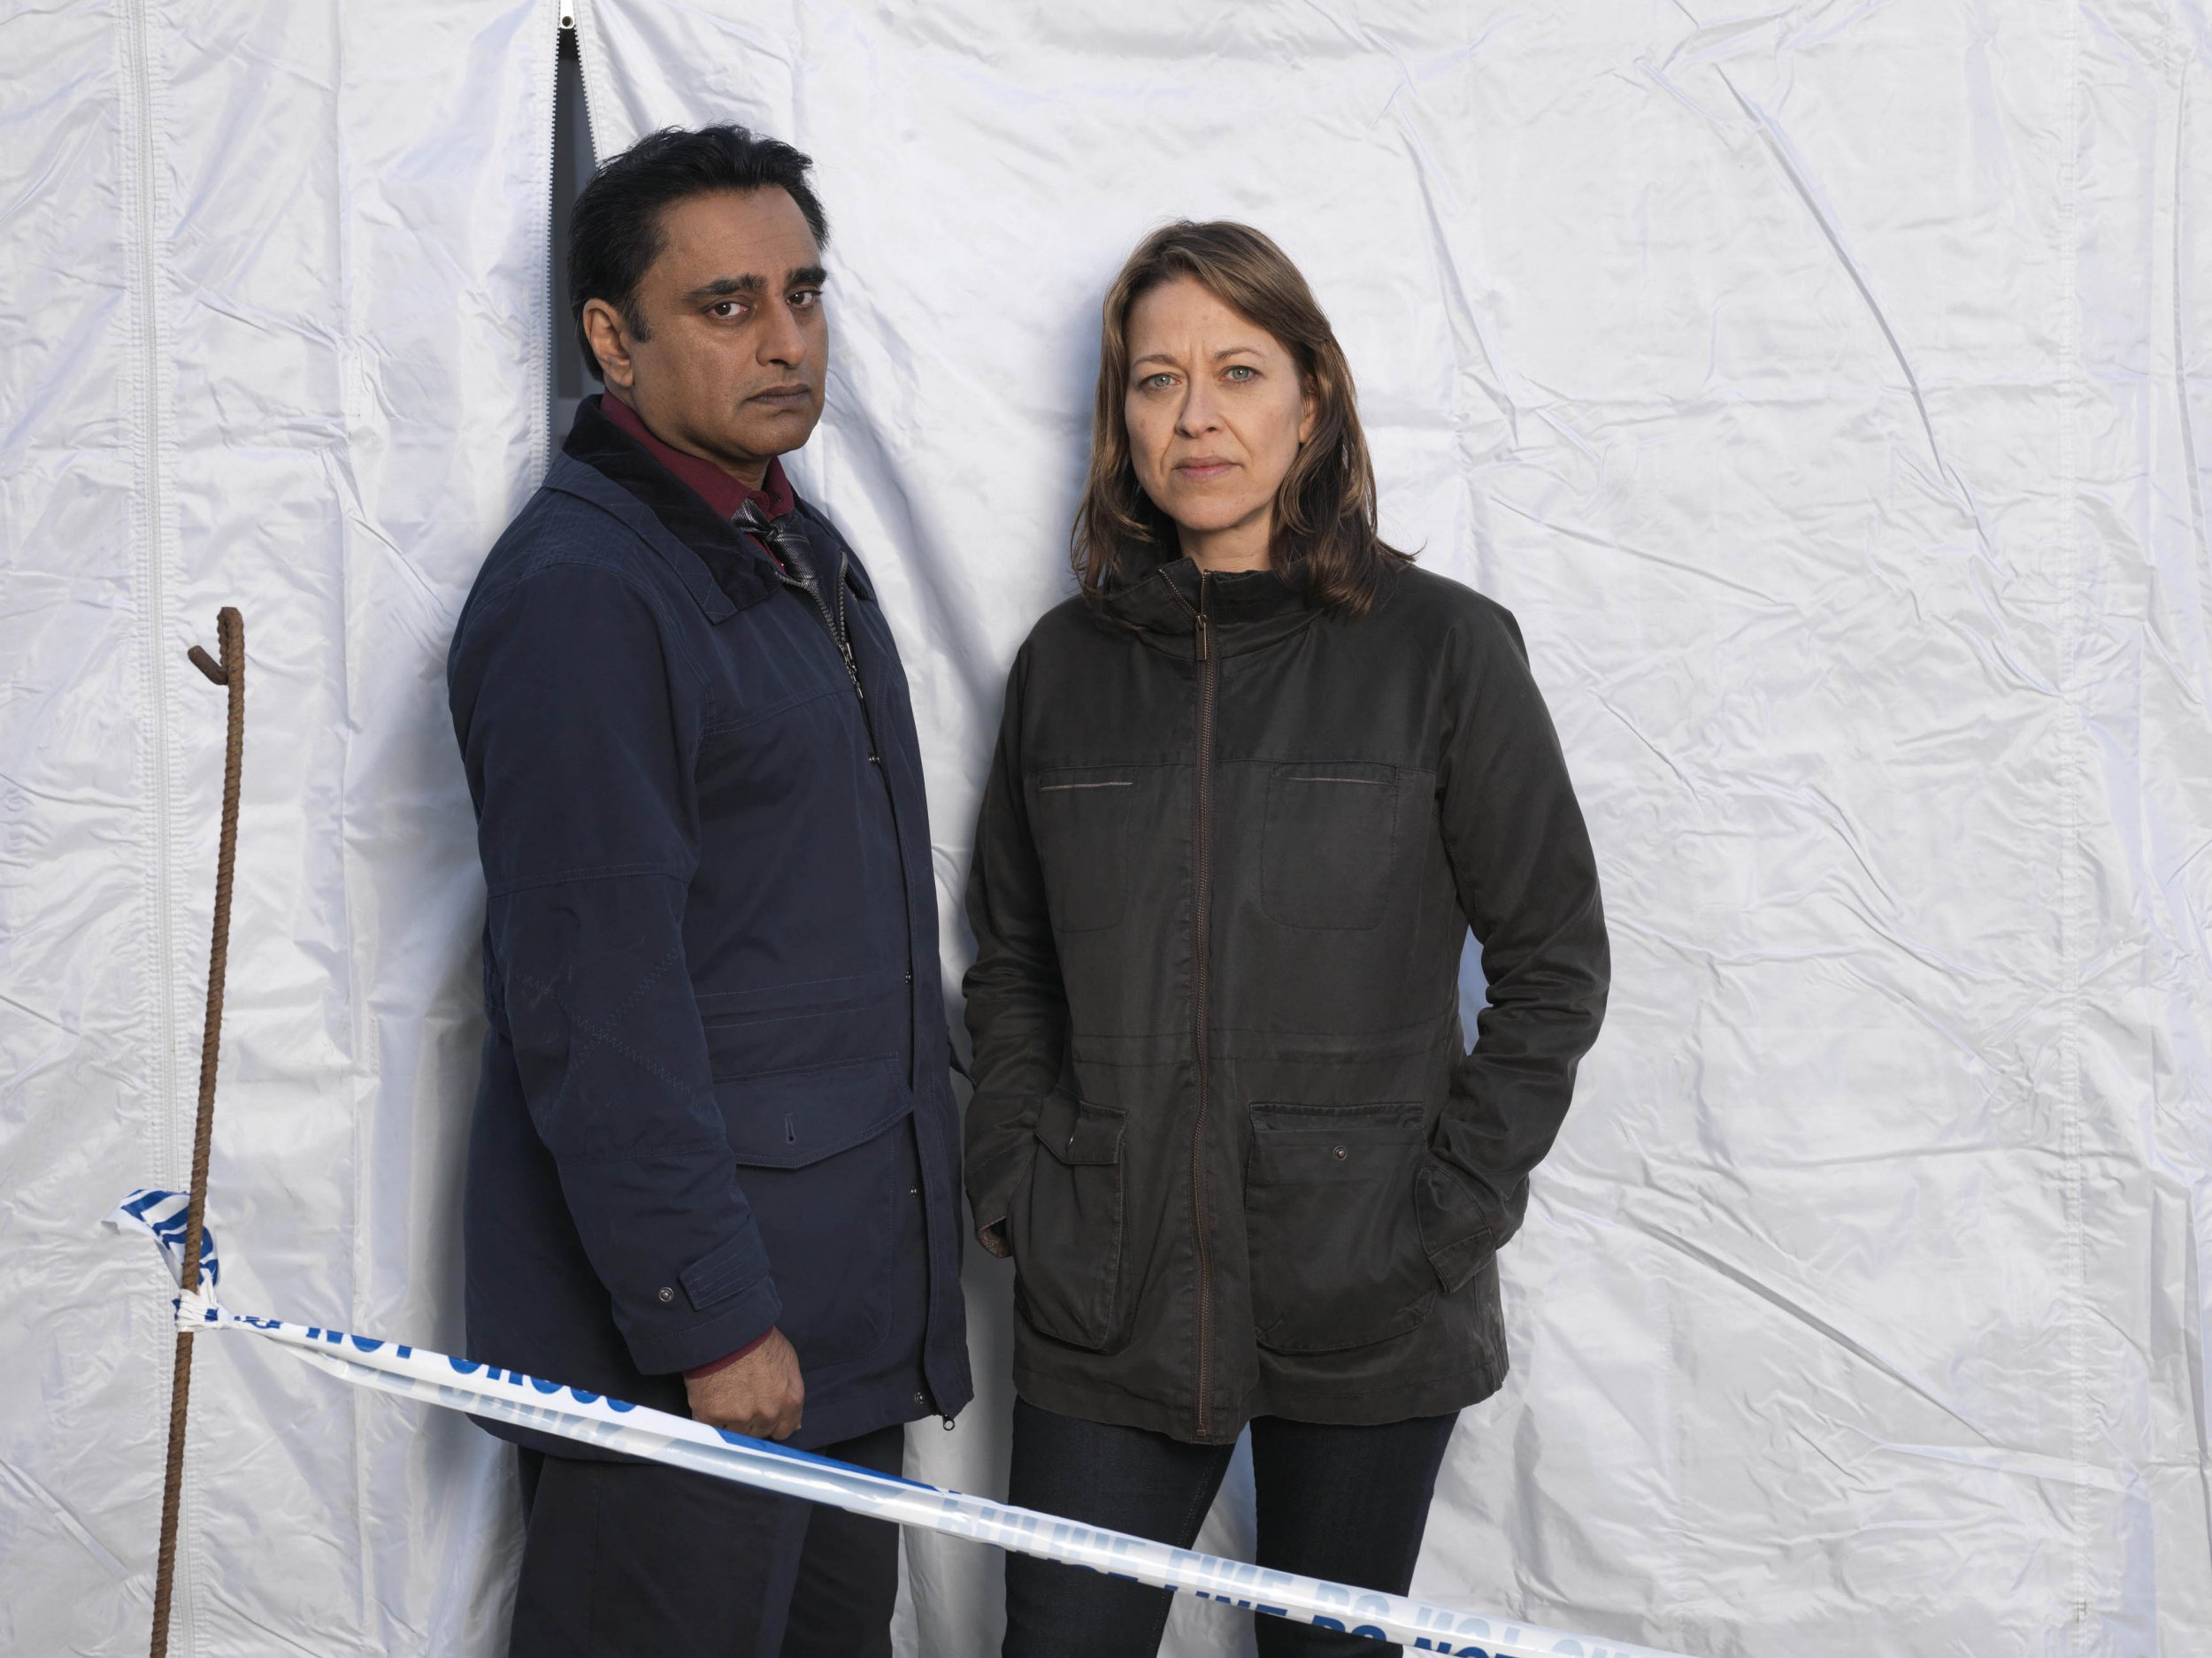 Television Programme: Unforgotten with Nicola Walker as DCI Cassie Stuart and Sanjeev Bhaskar as DS Sunil Khan MAINSTREET PICTURES FOR ITV UNFORGOTTEN EPISODE 6 Pictured : Nicola Walker as DCI Cassie Stuart and Sanjeev Bhaskar as DS Sunil Khan. Photographer: JOHN ROGERS This image is the copyright of ITV and must be credited. The images are for one use only and to be used in relation to UNFORGOTTEN, any further usage could incur a fee.